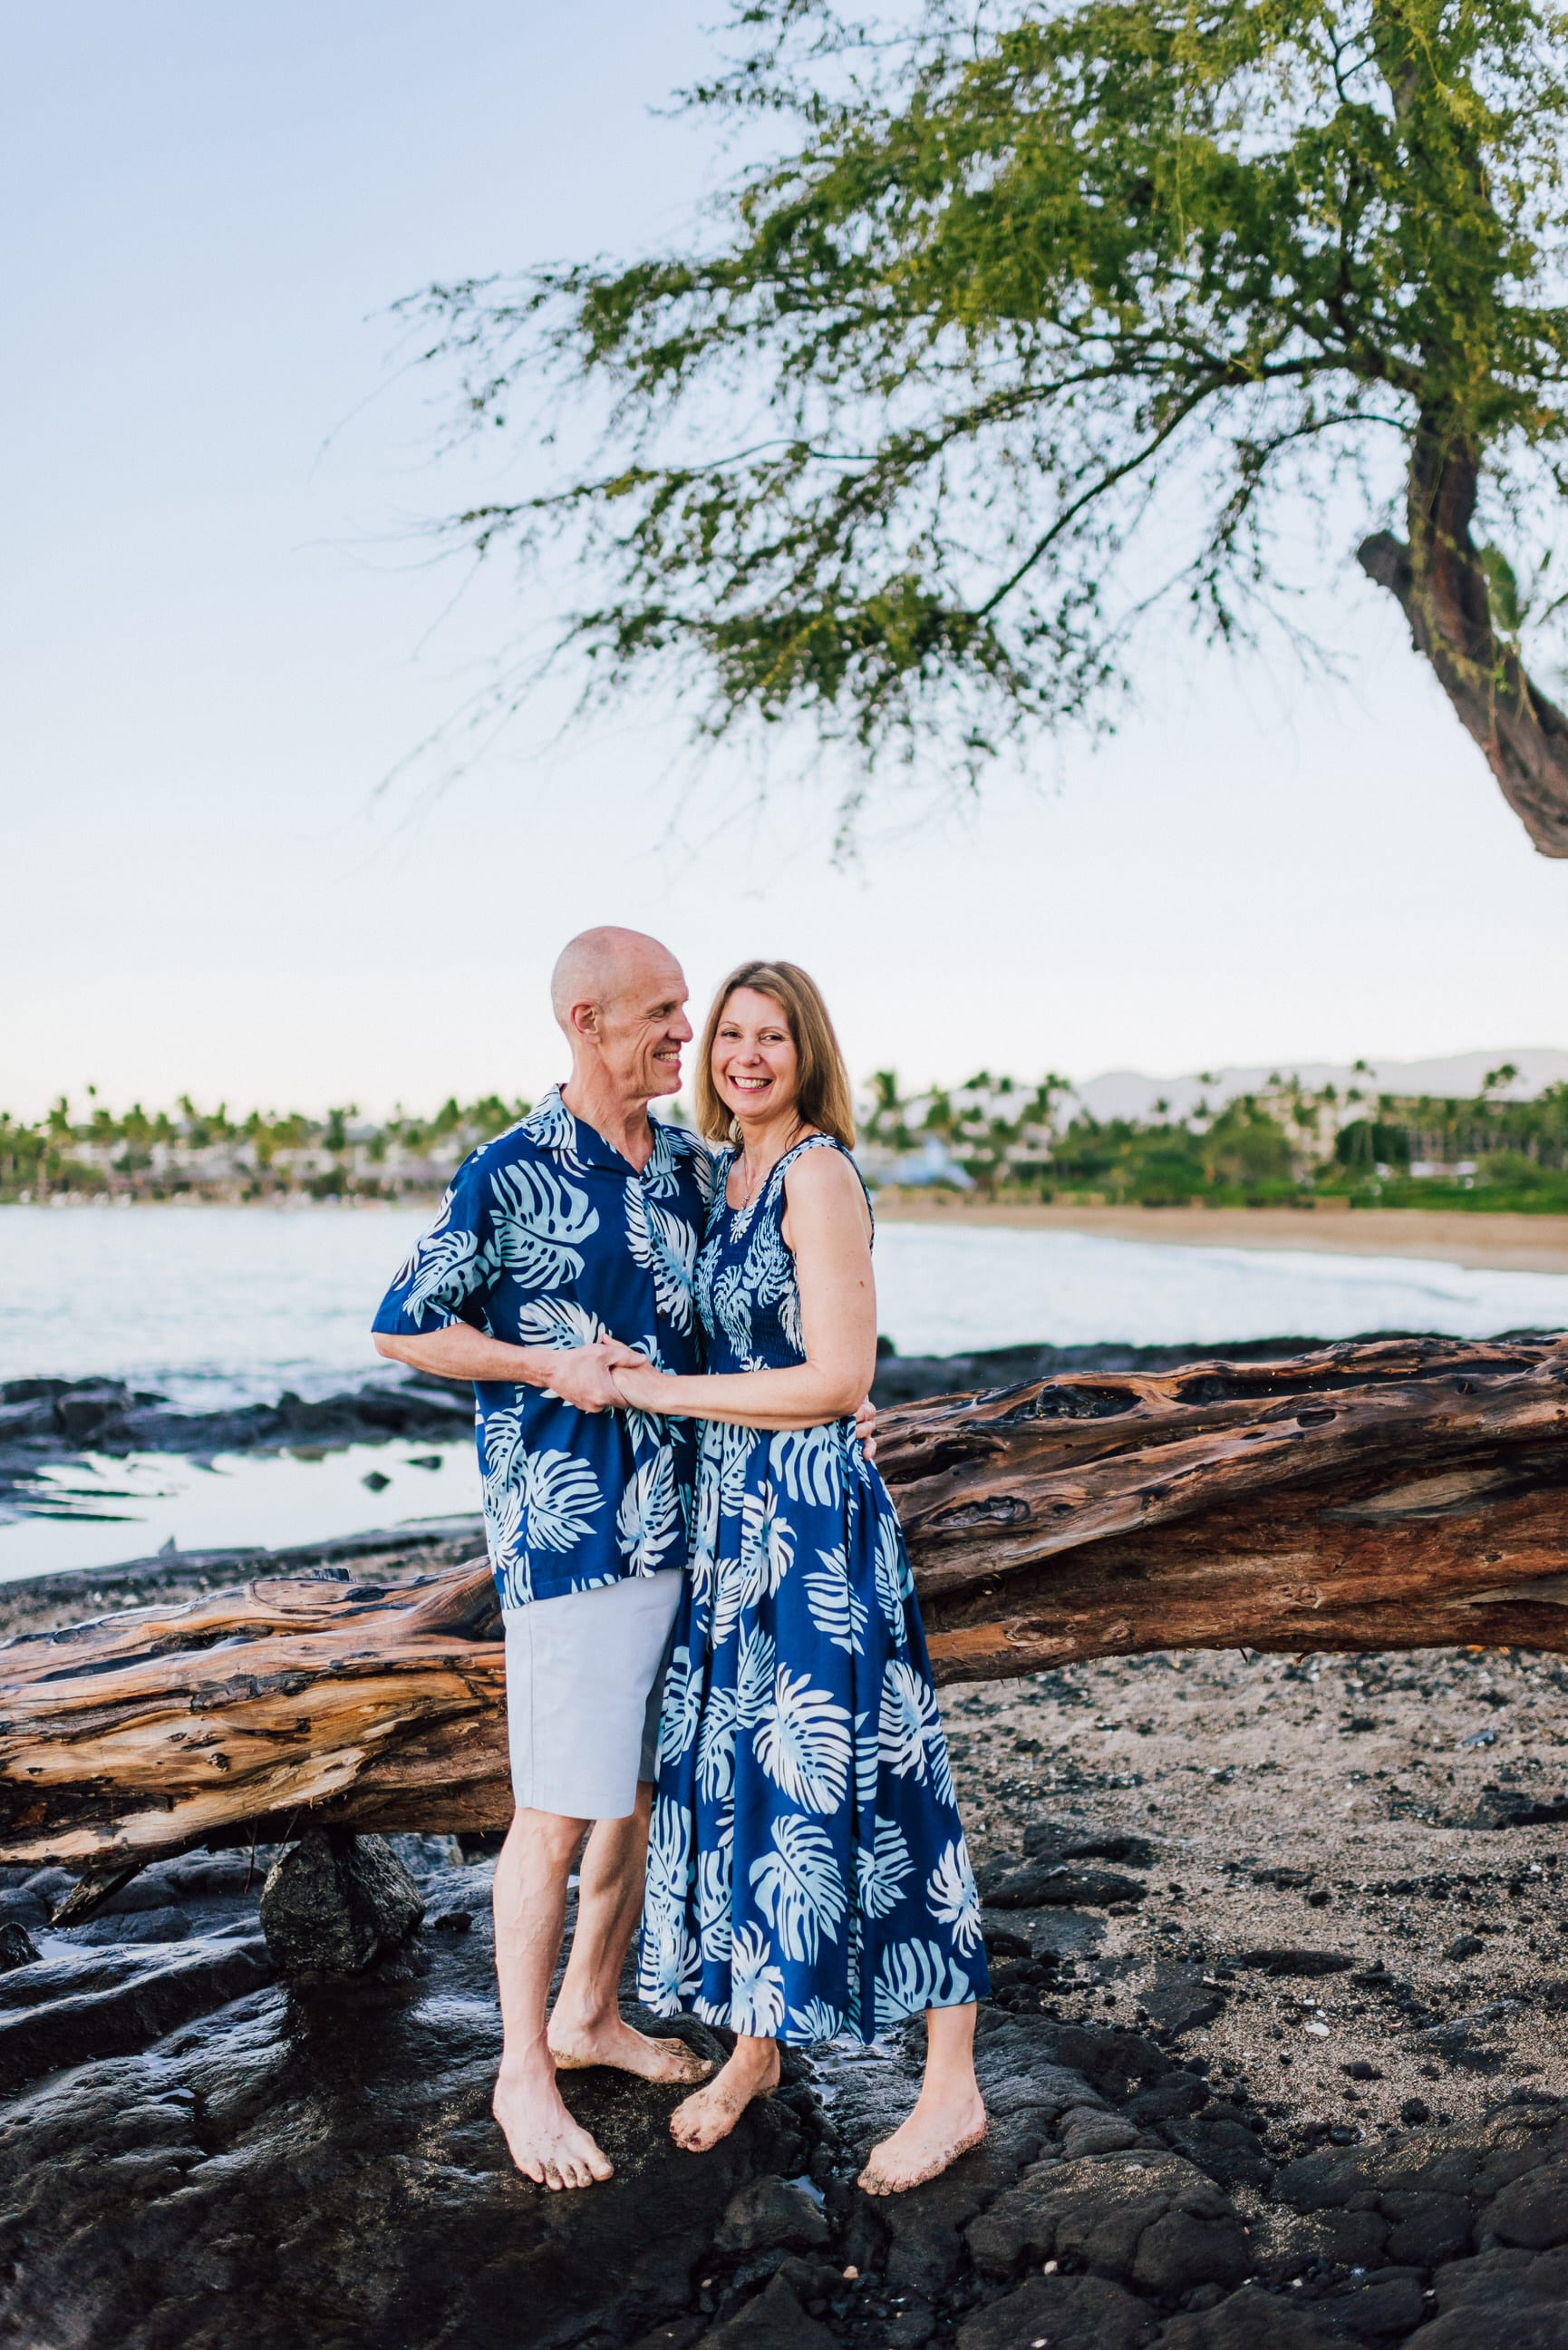 Big-Island-Photographers-Waikoloa-Family-Photos5.jpg